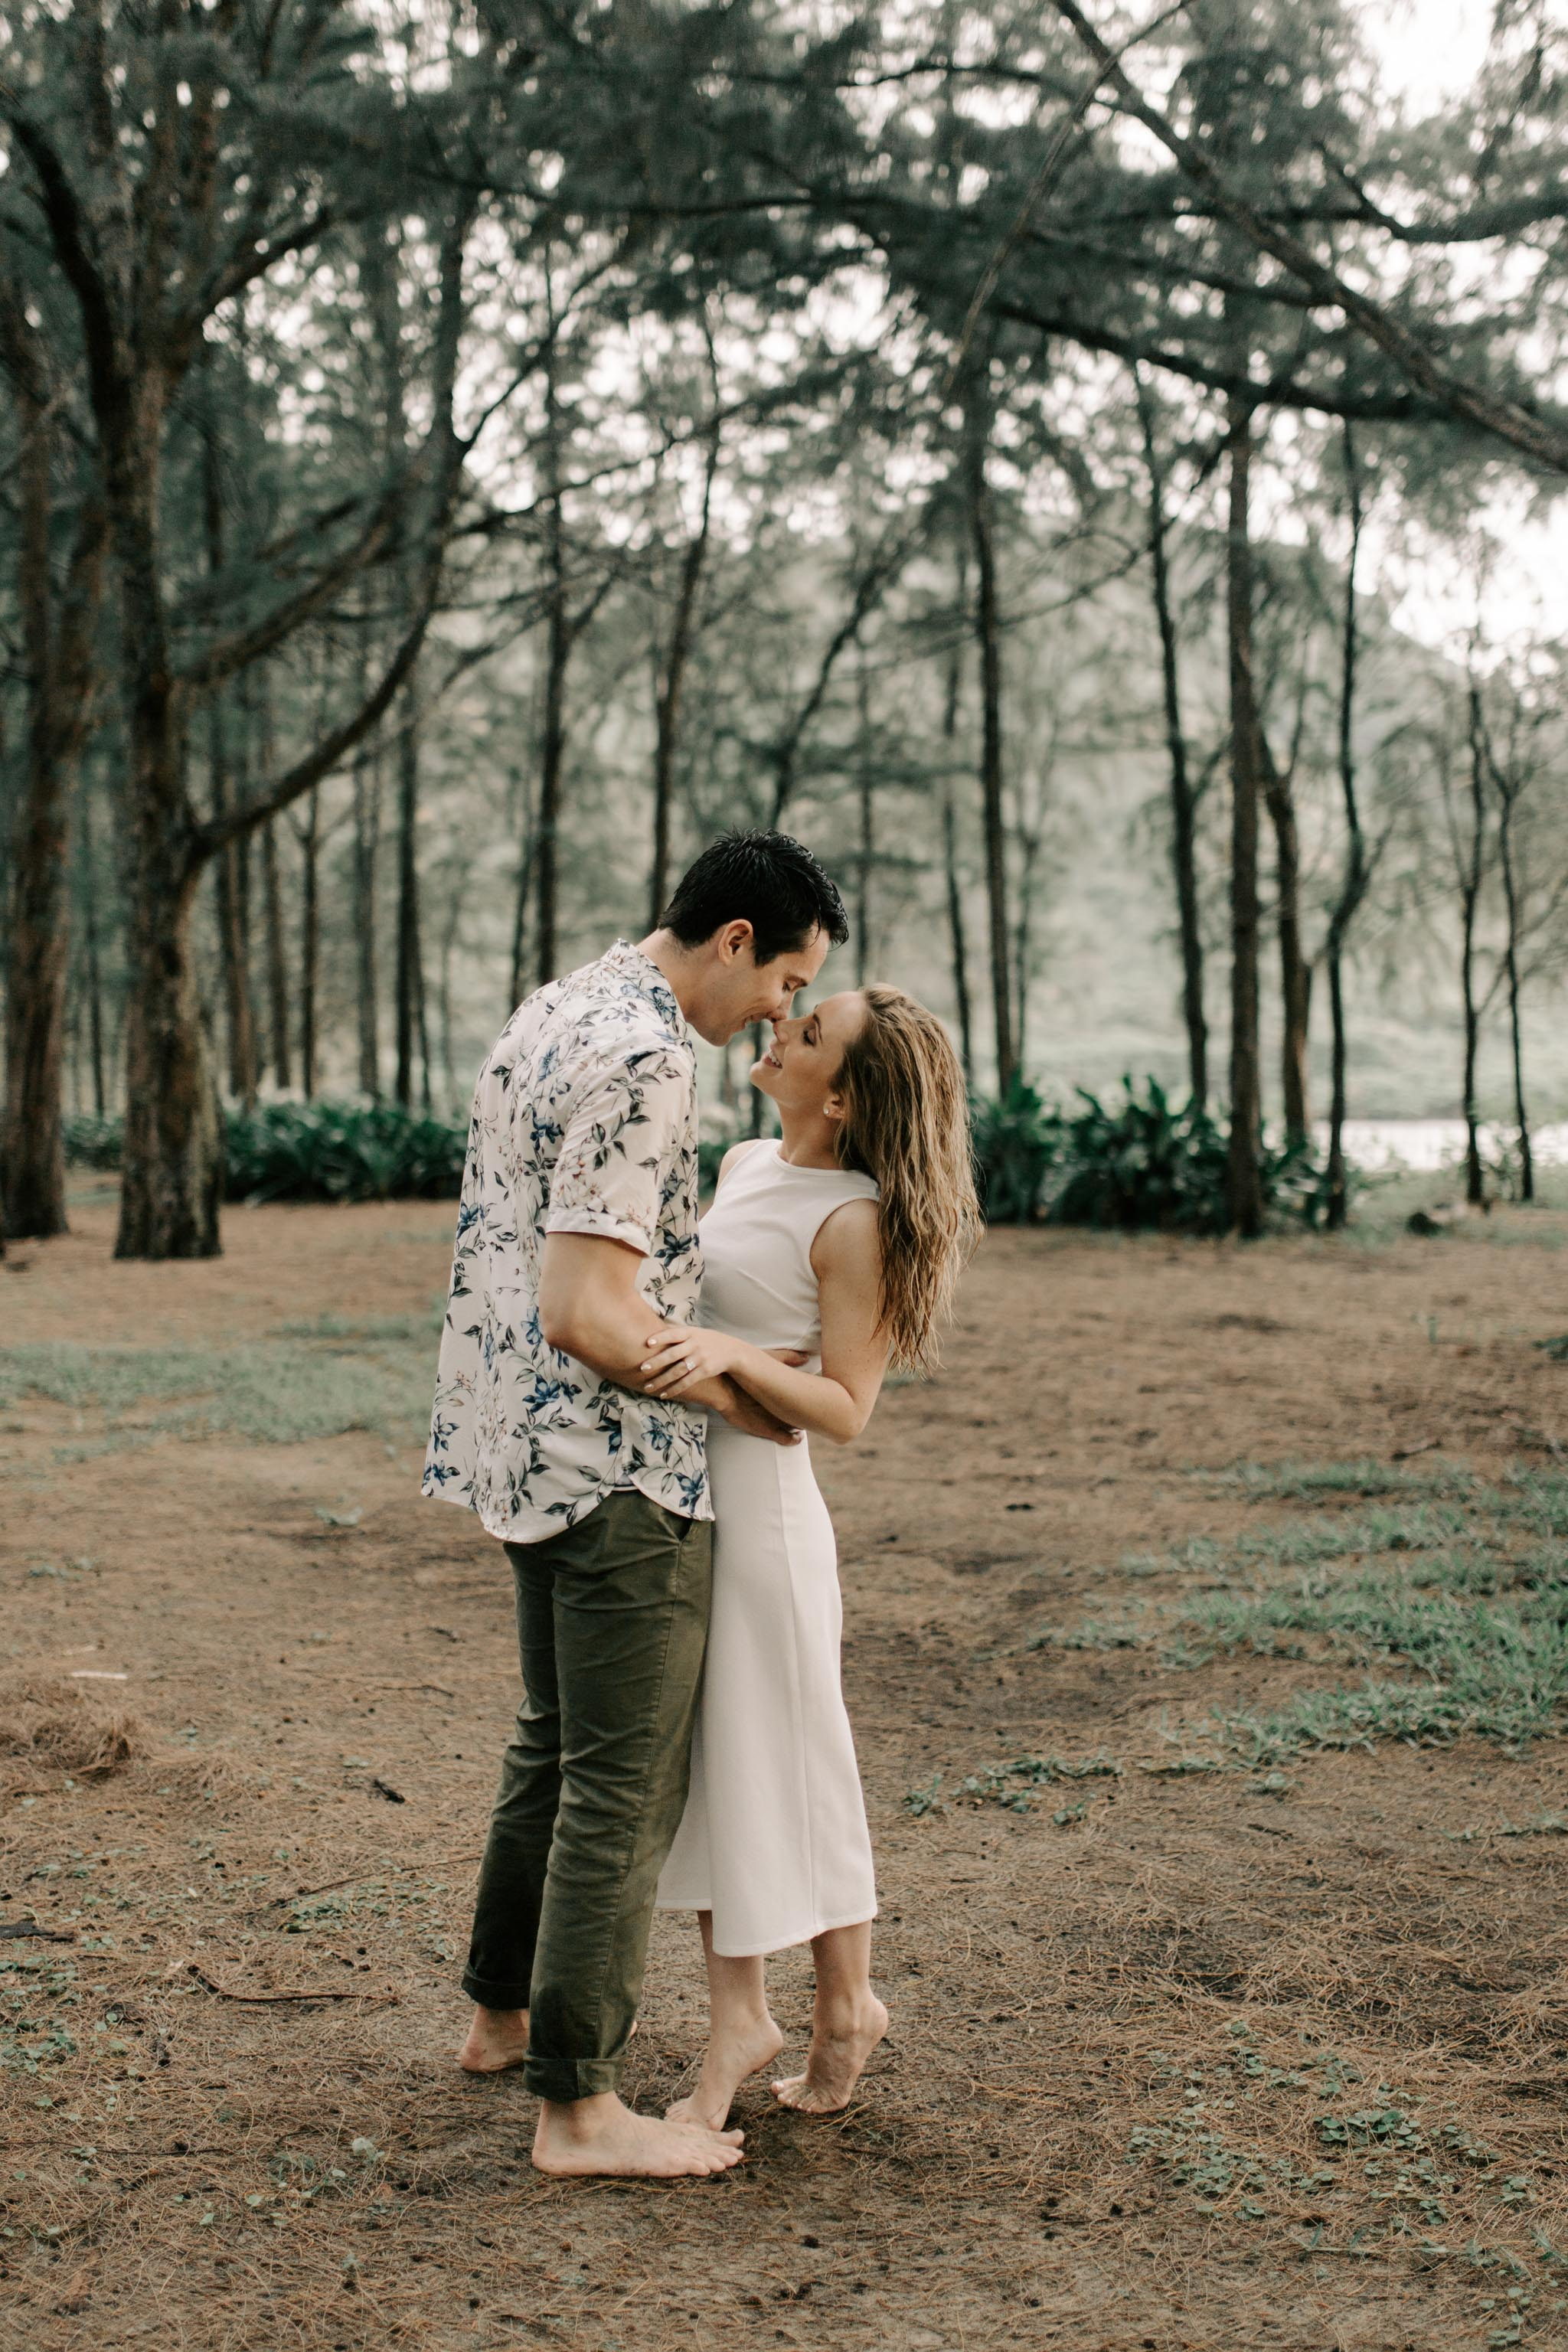 Cute engagement session at Kahana Bay Hawaii by Oahu Photographer Desiree Leilani